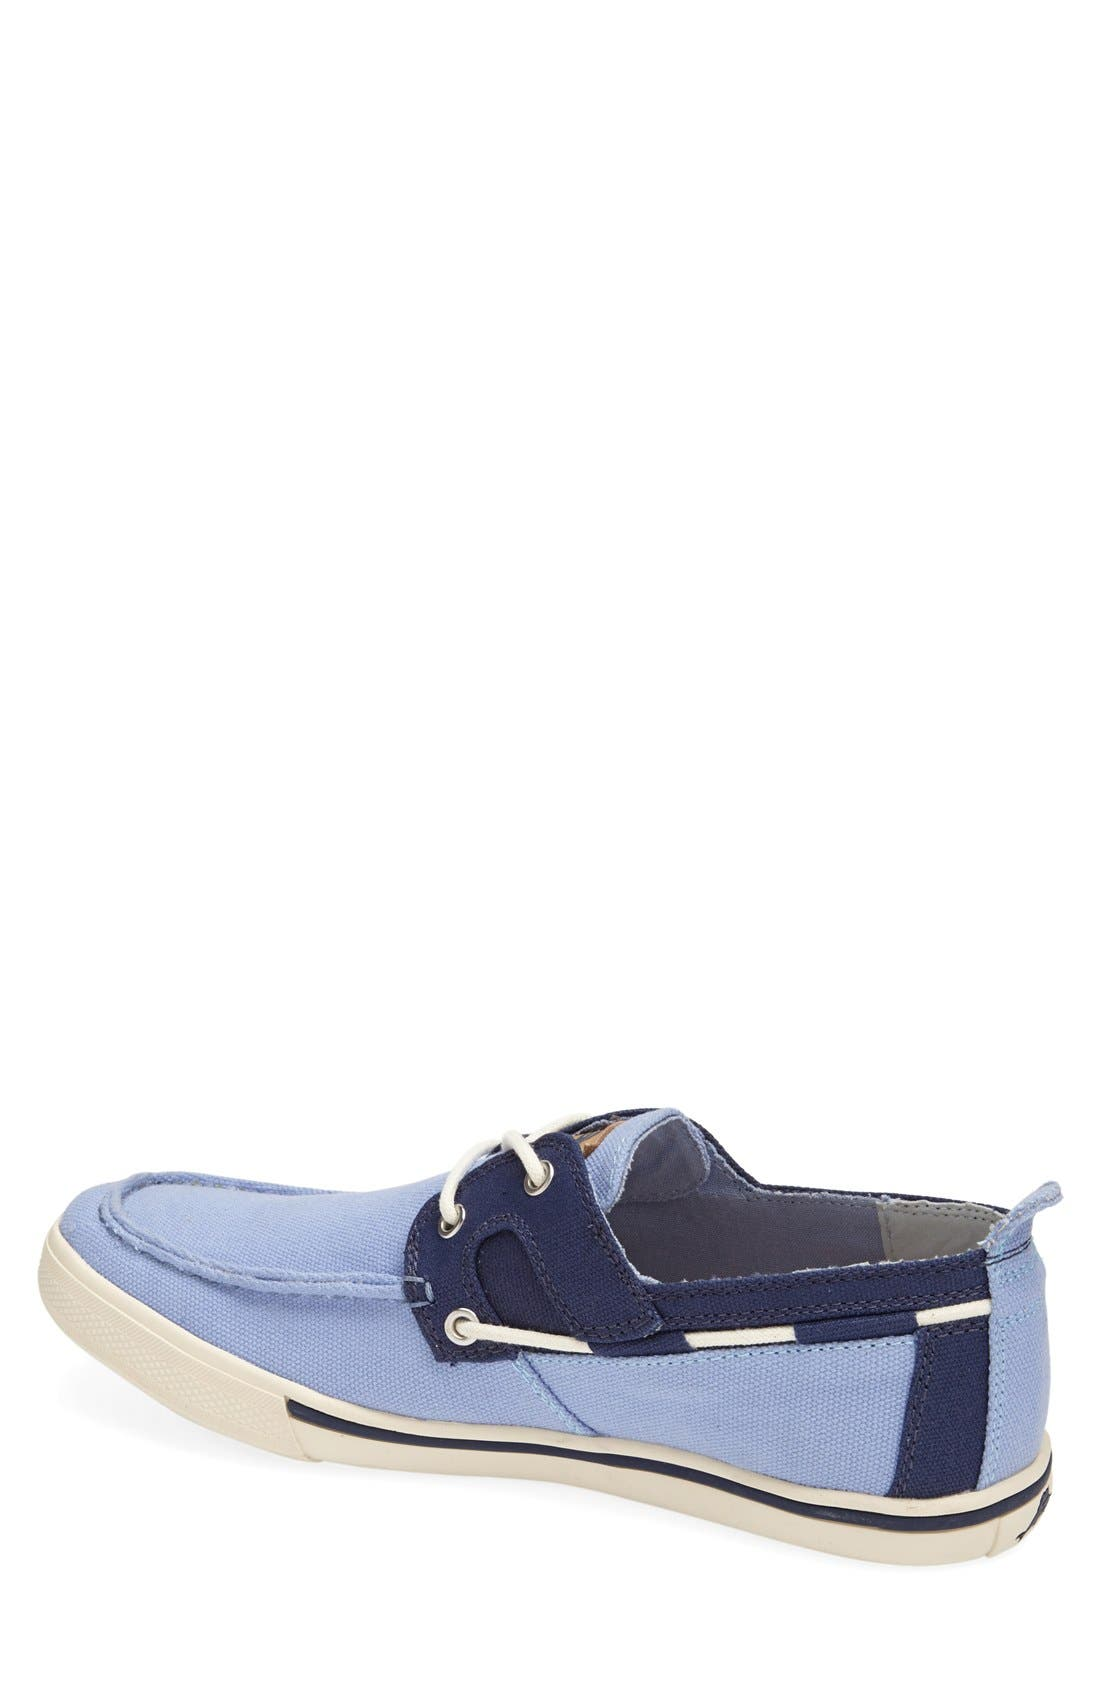 Alternate Image 2  - Tommy Bahama 'Calderon' Boat Shoe